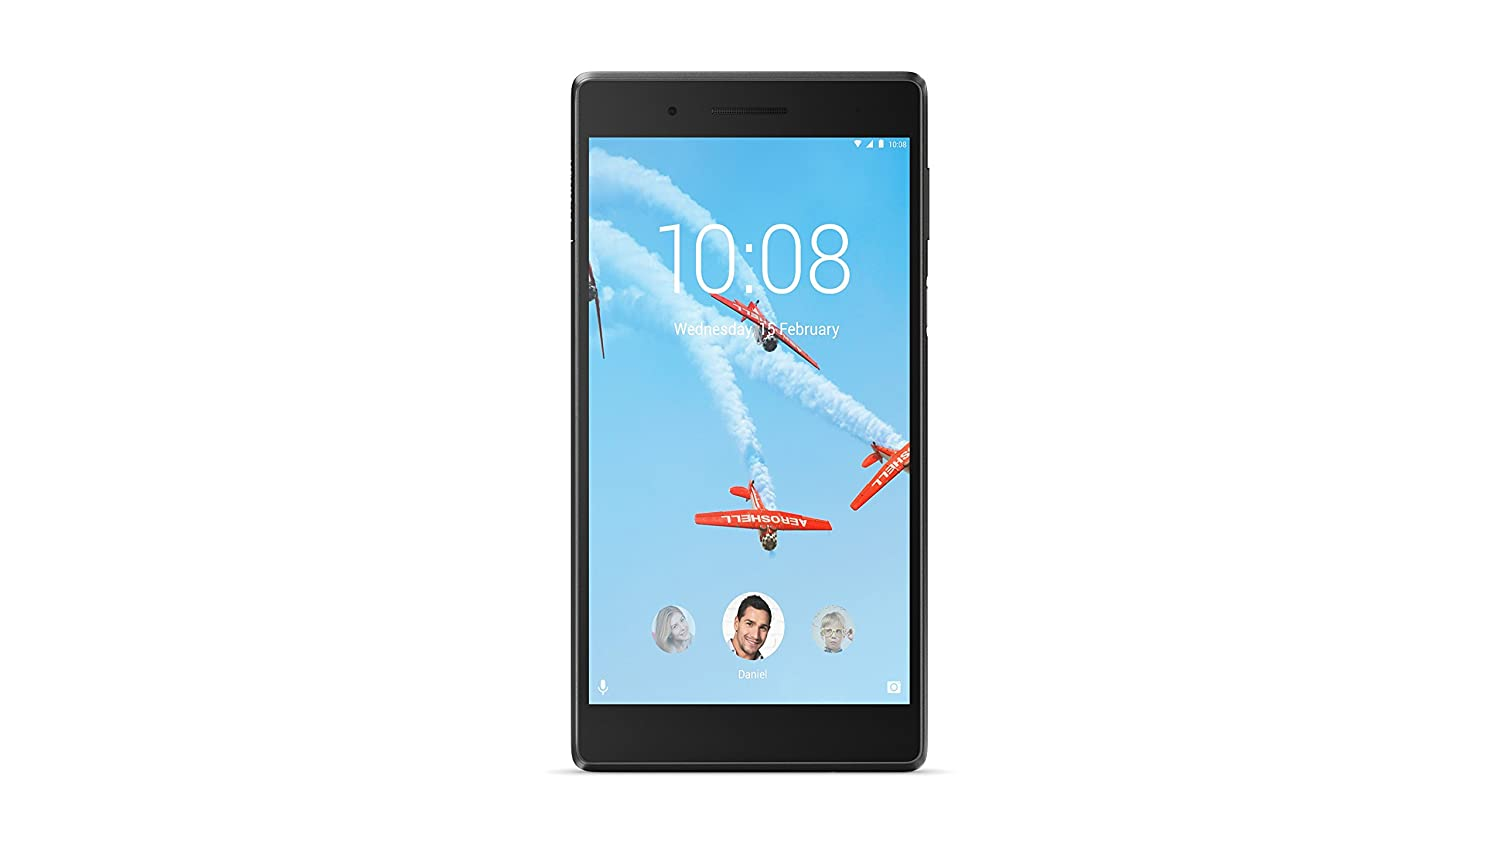 Buy Lenovo Tab 7 Tablet 6 98 Inch 16gb Wi Fi 4g Lte Voice Calling Black Online At Low Prices In India Amazon In